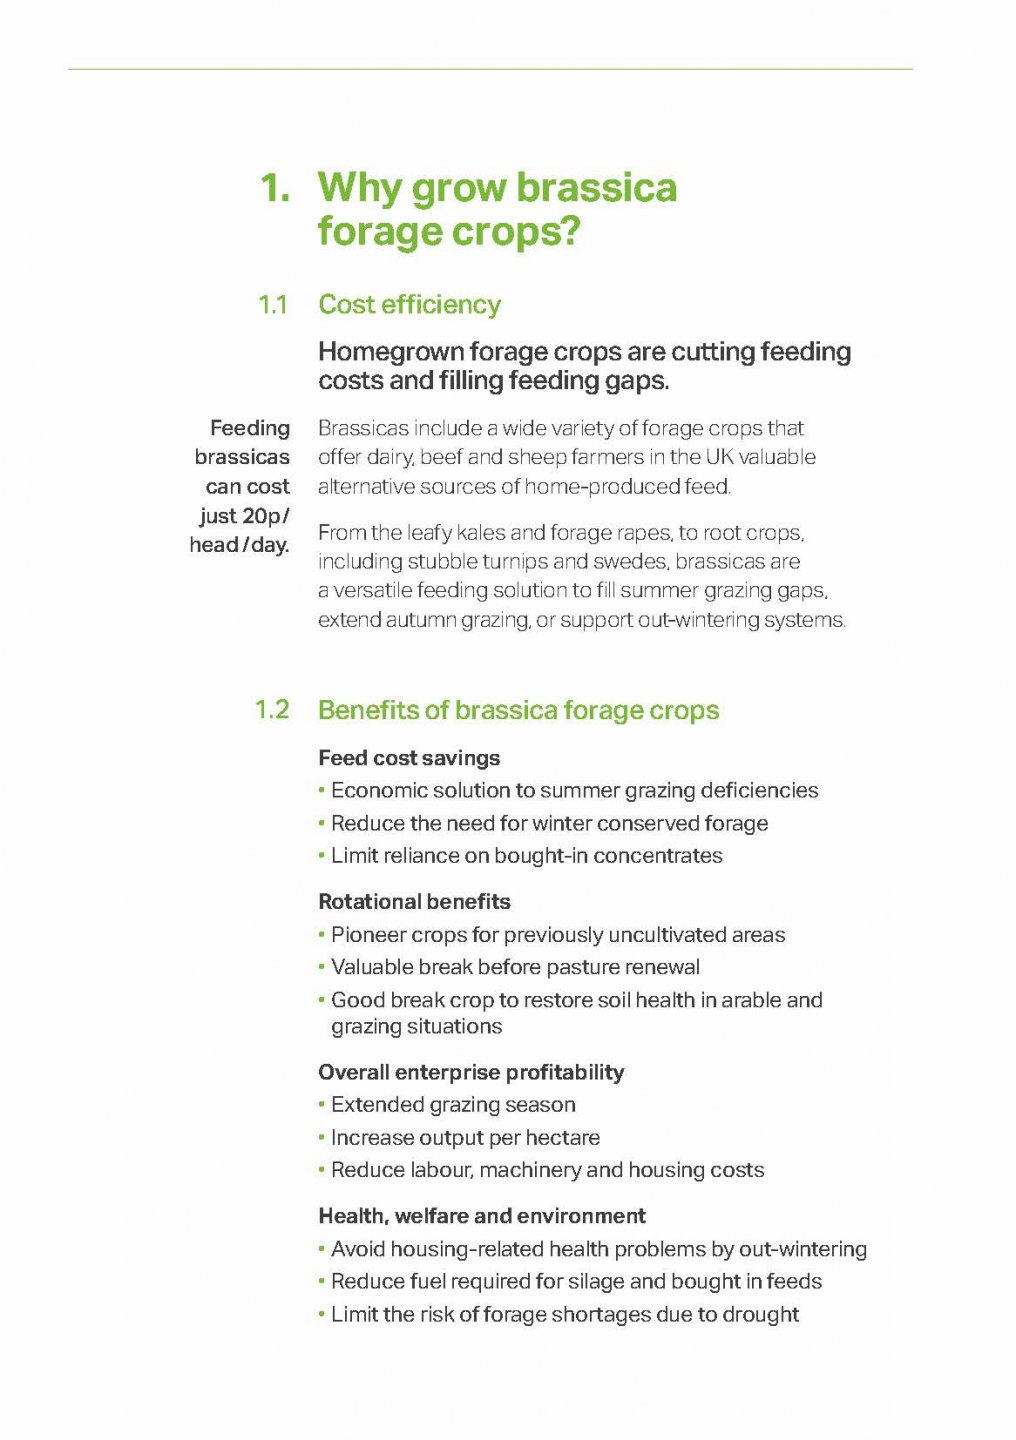 GGB_AGRI_107_Brassica_Growers_guide_2020_Page_03.jpg